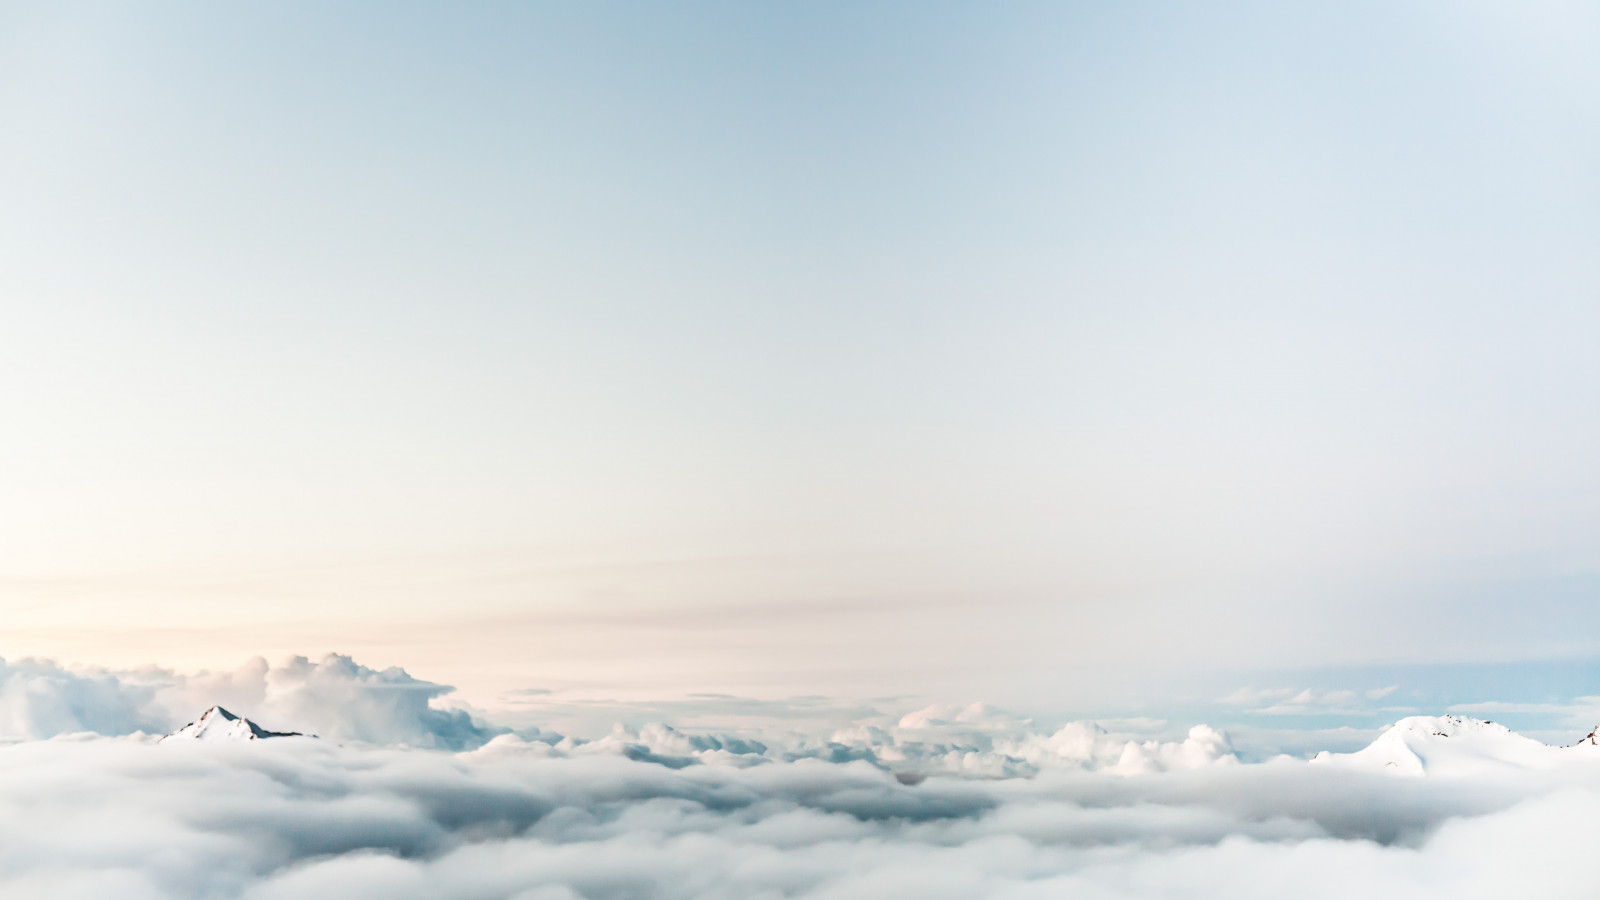 Floating on clouds wallpaper 1600x900